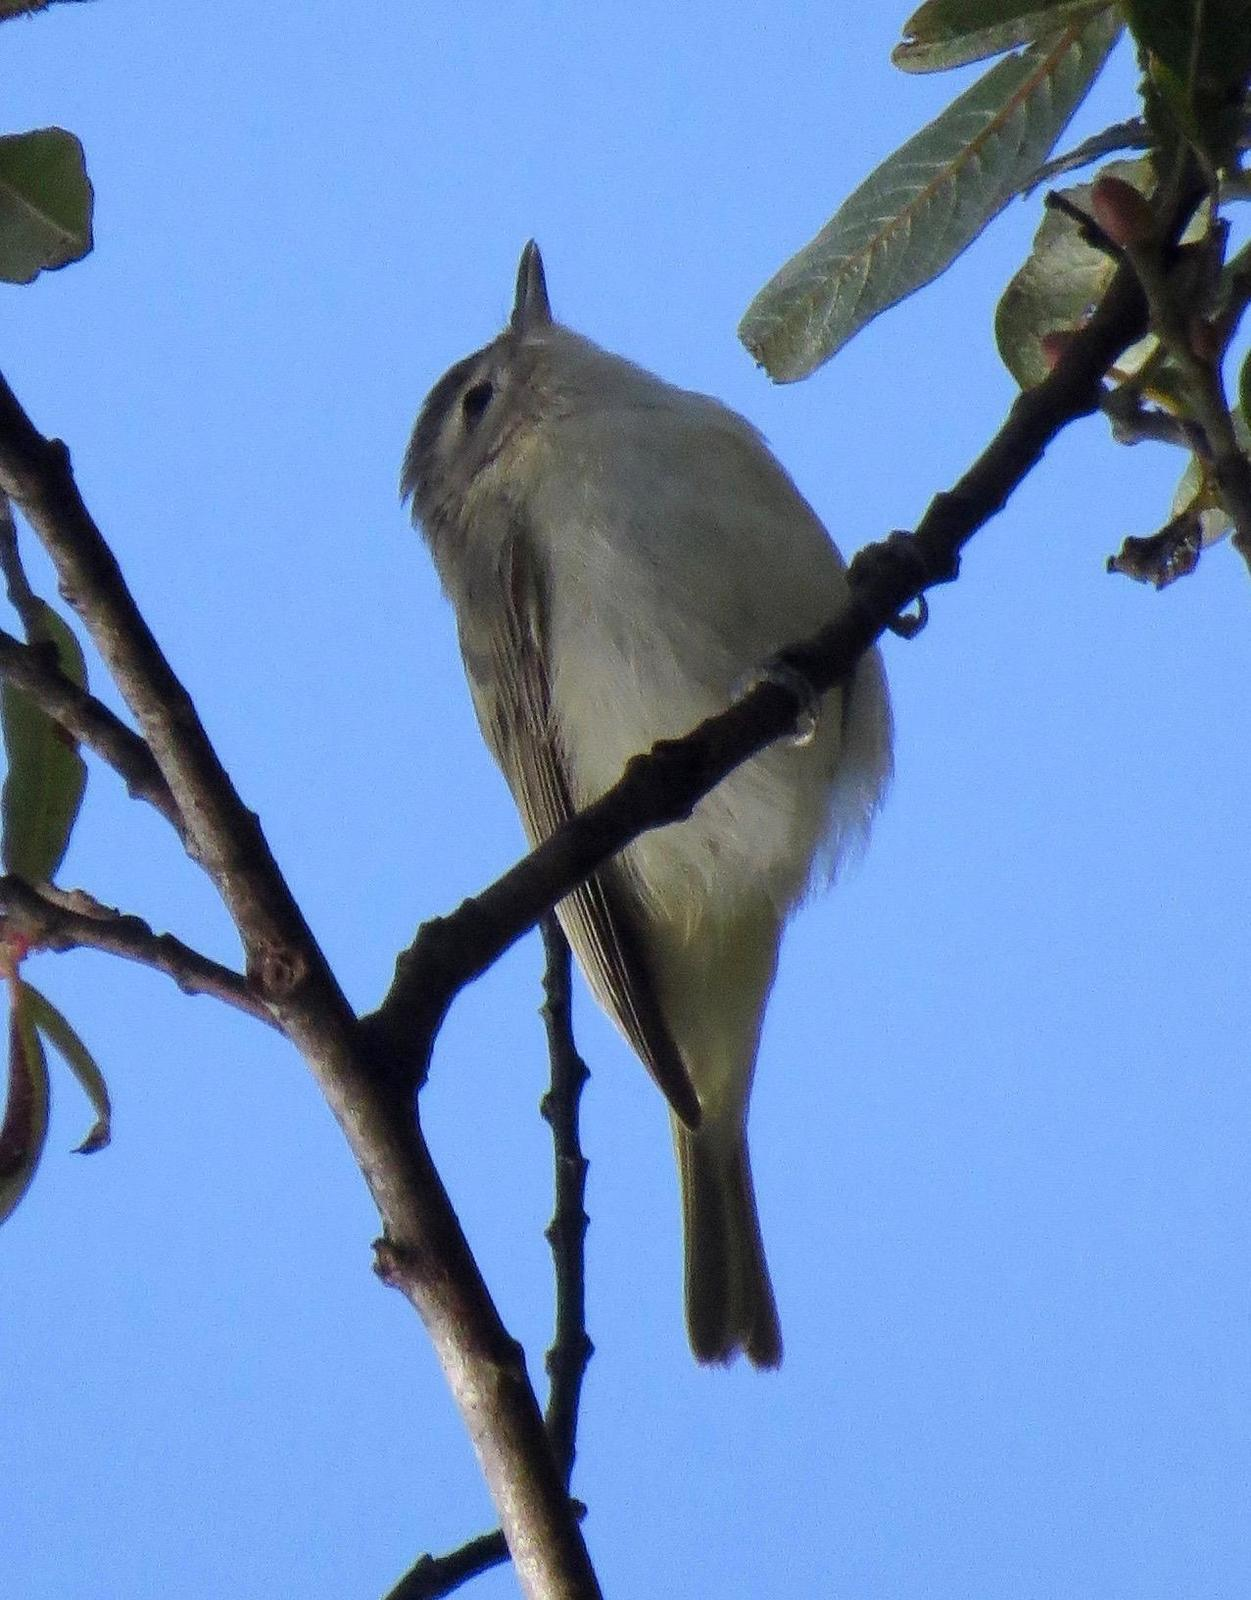 Warbling Vireo (Western) Photo by Don Glasco